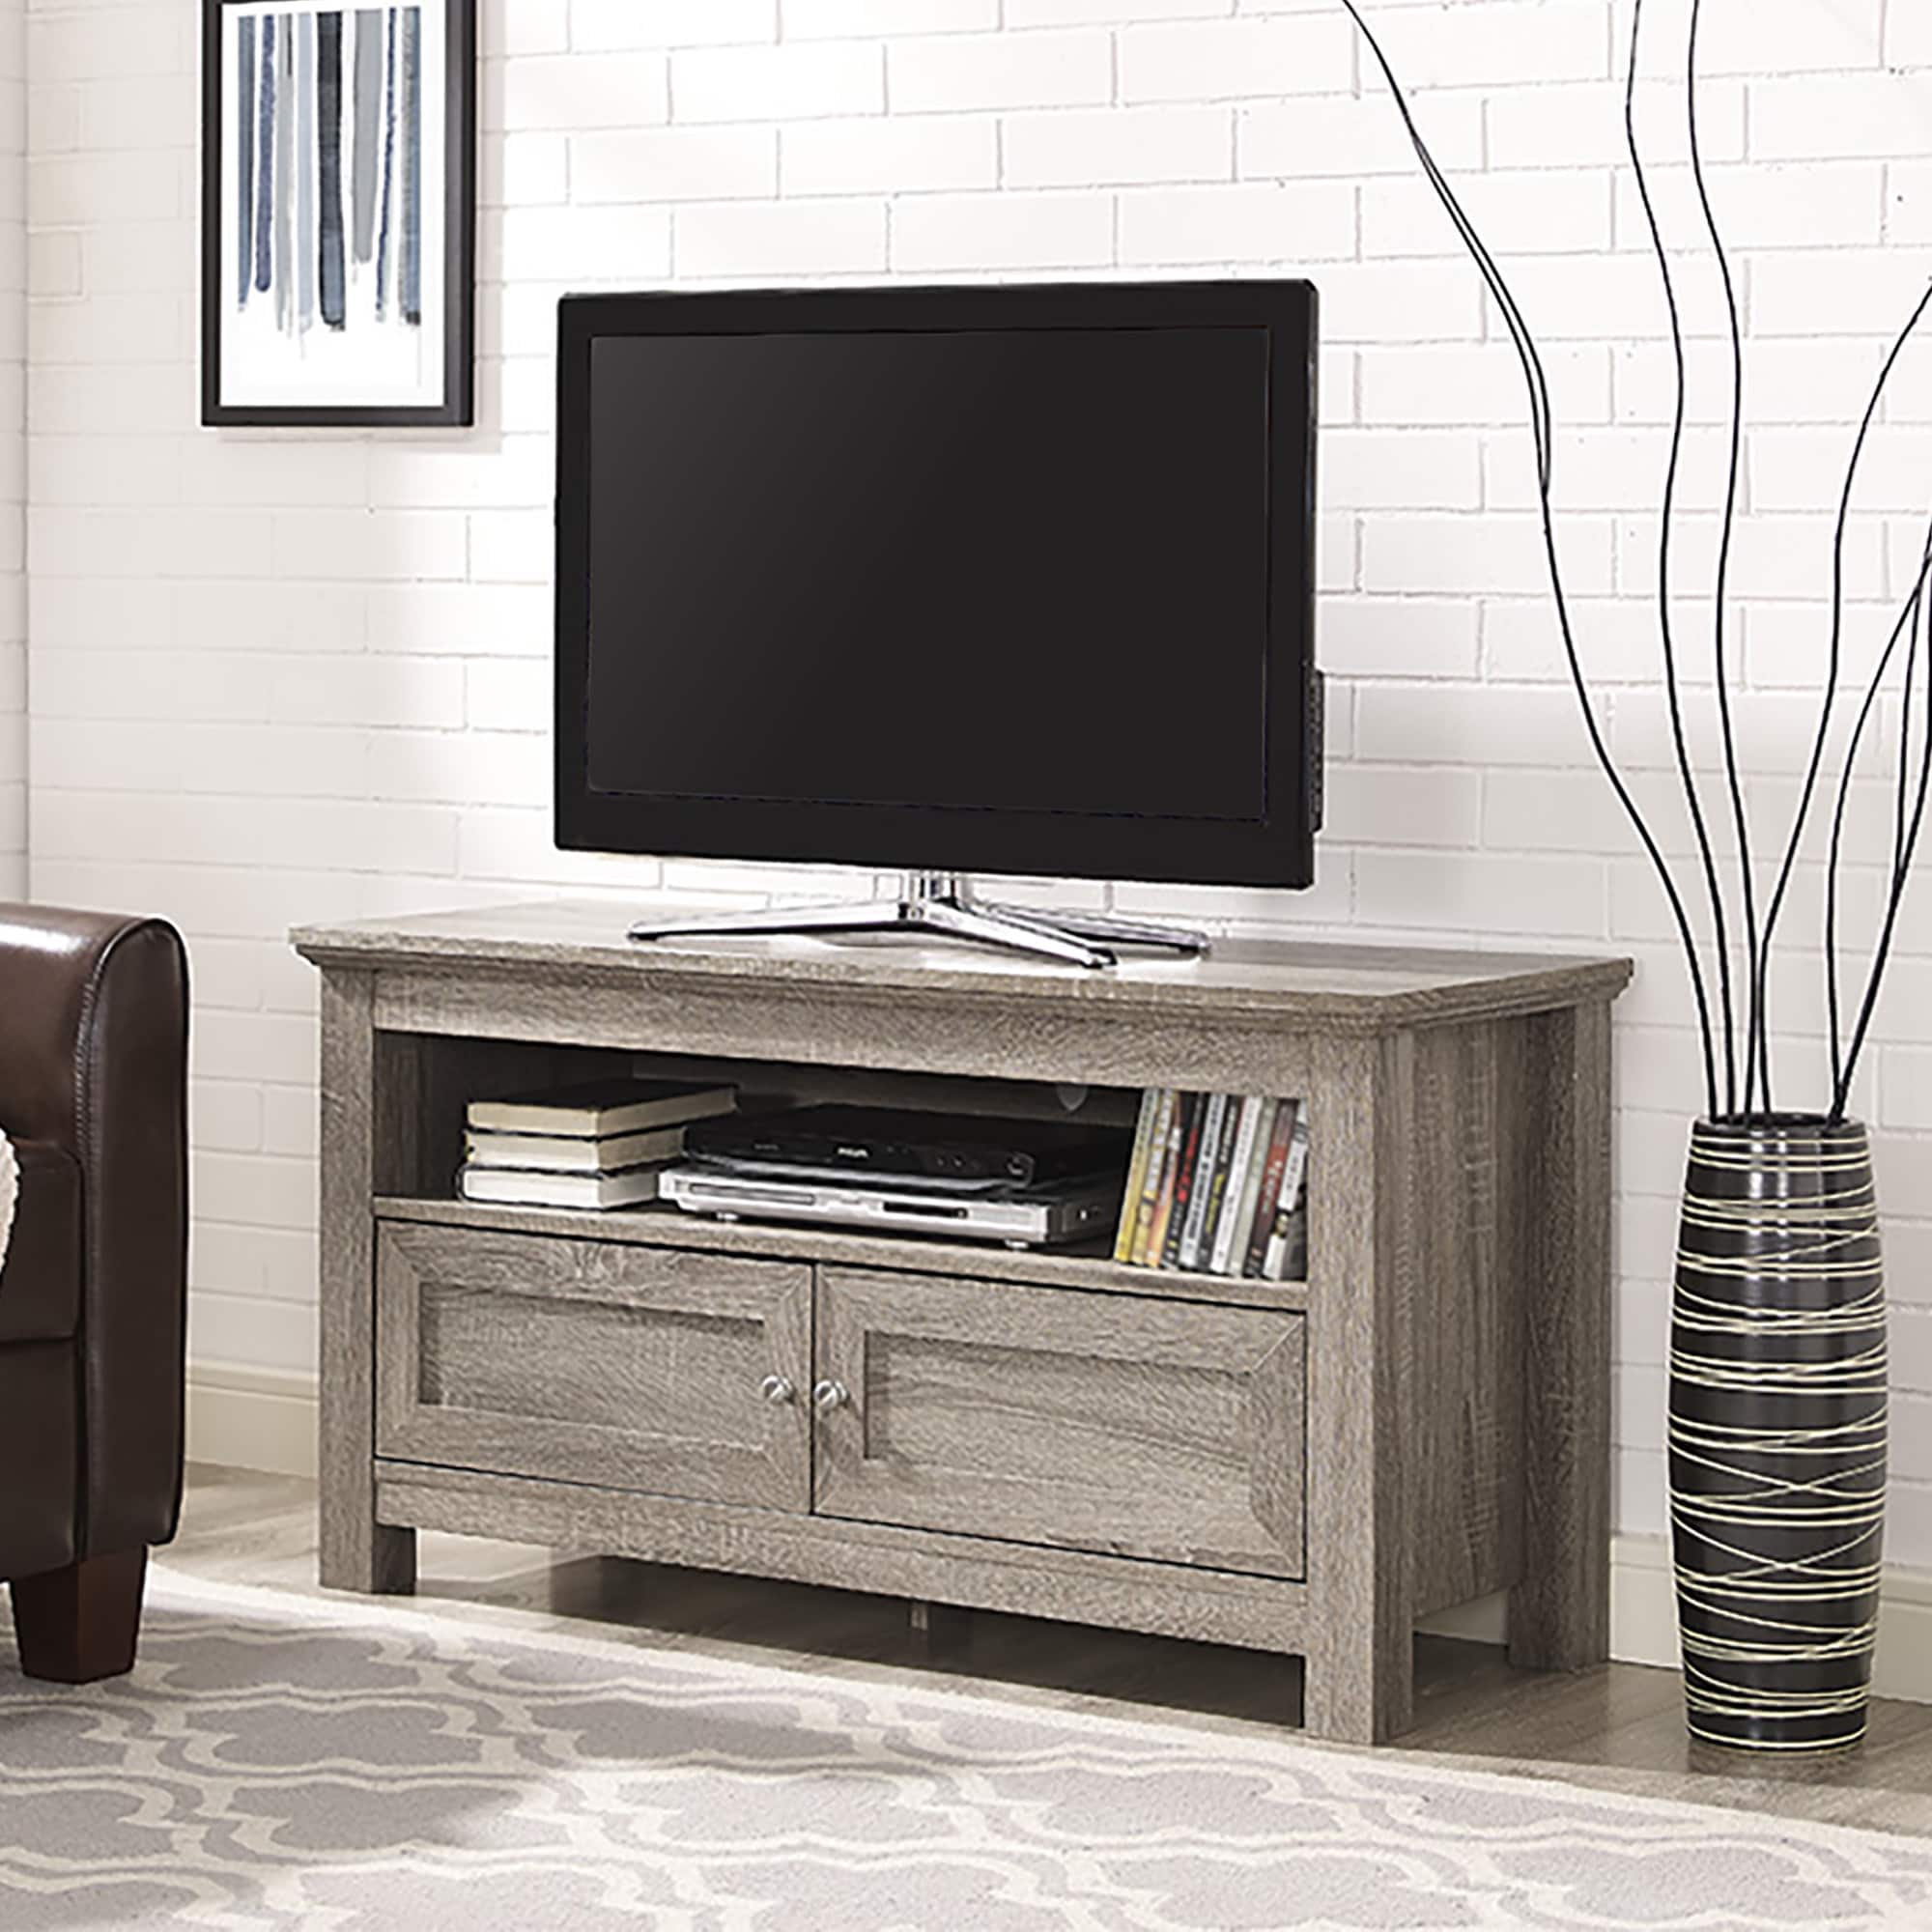 44-inch Driftwood TV Stand